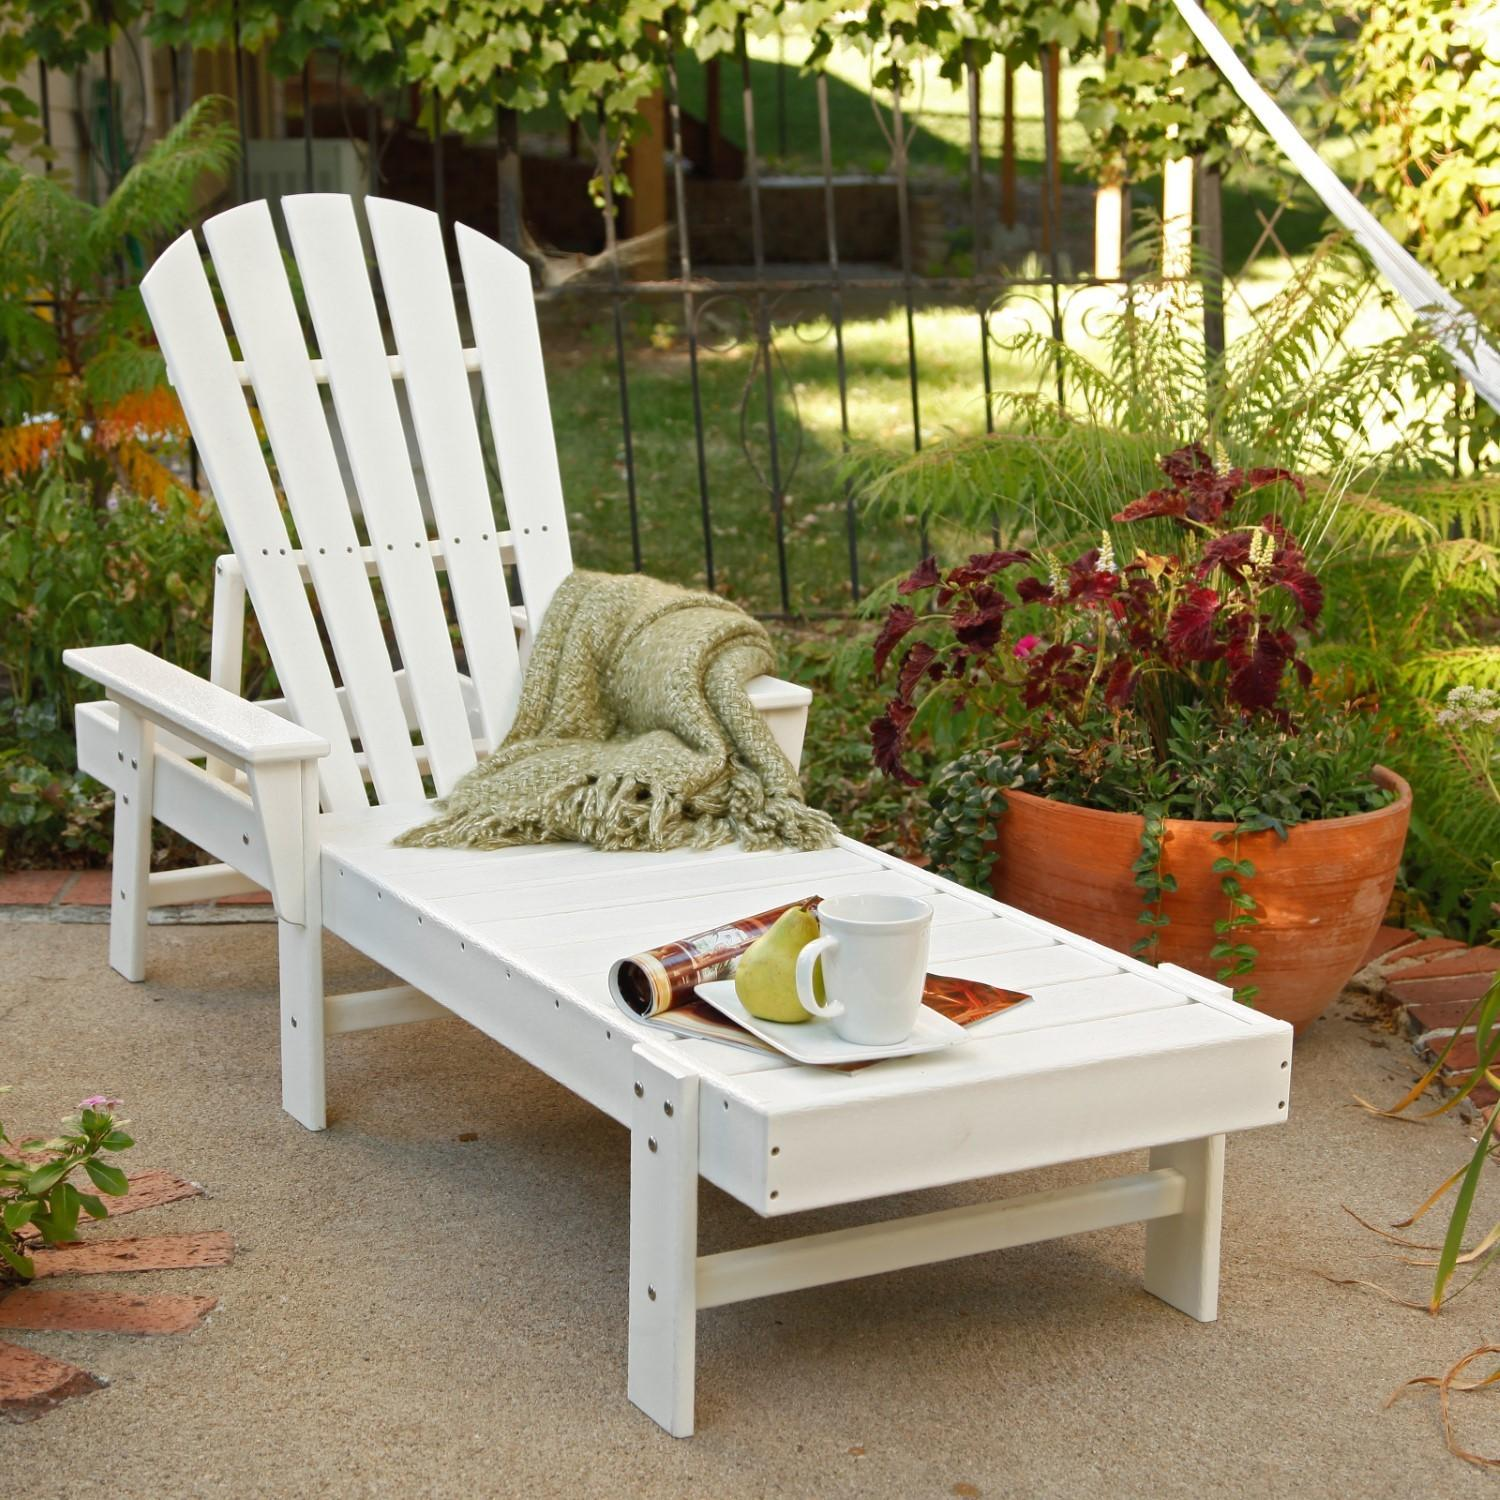 Polywood South Beach Recycled Plastic Chaise Lounge Jet